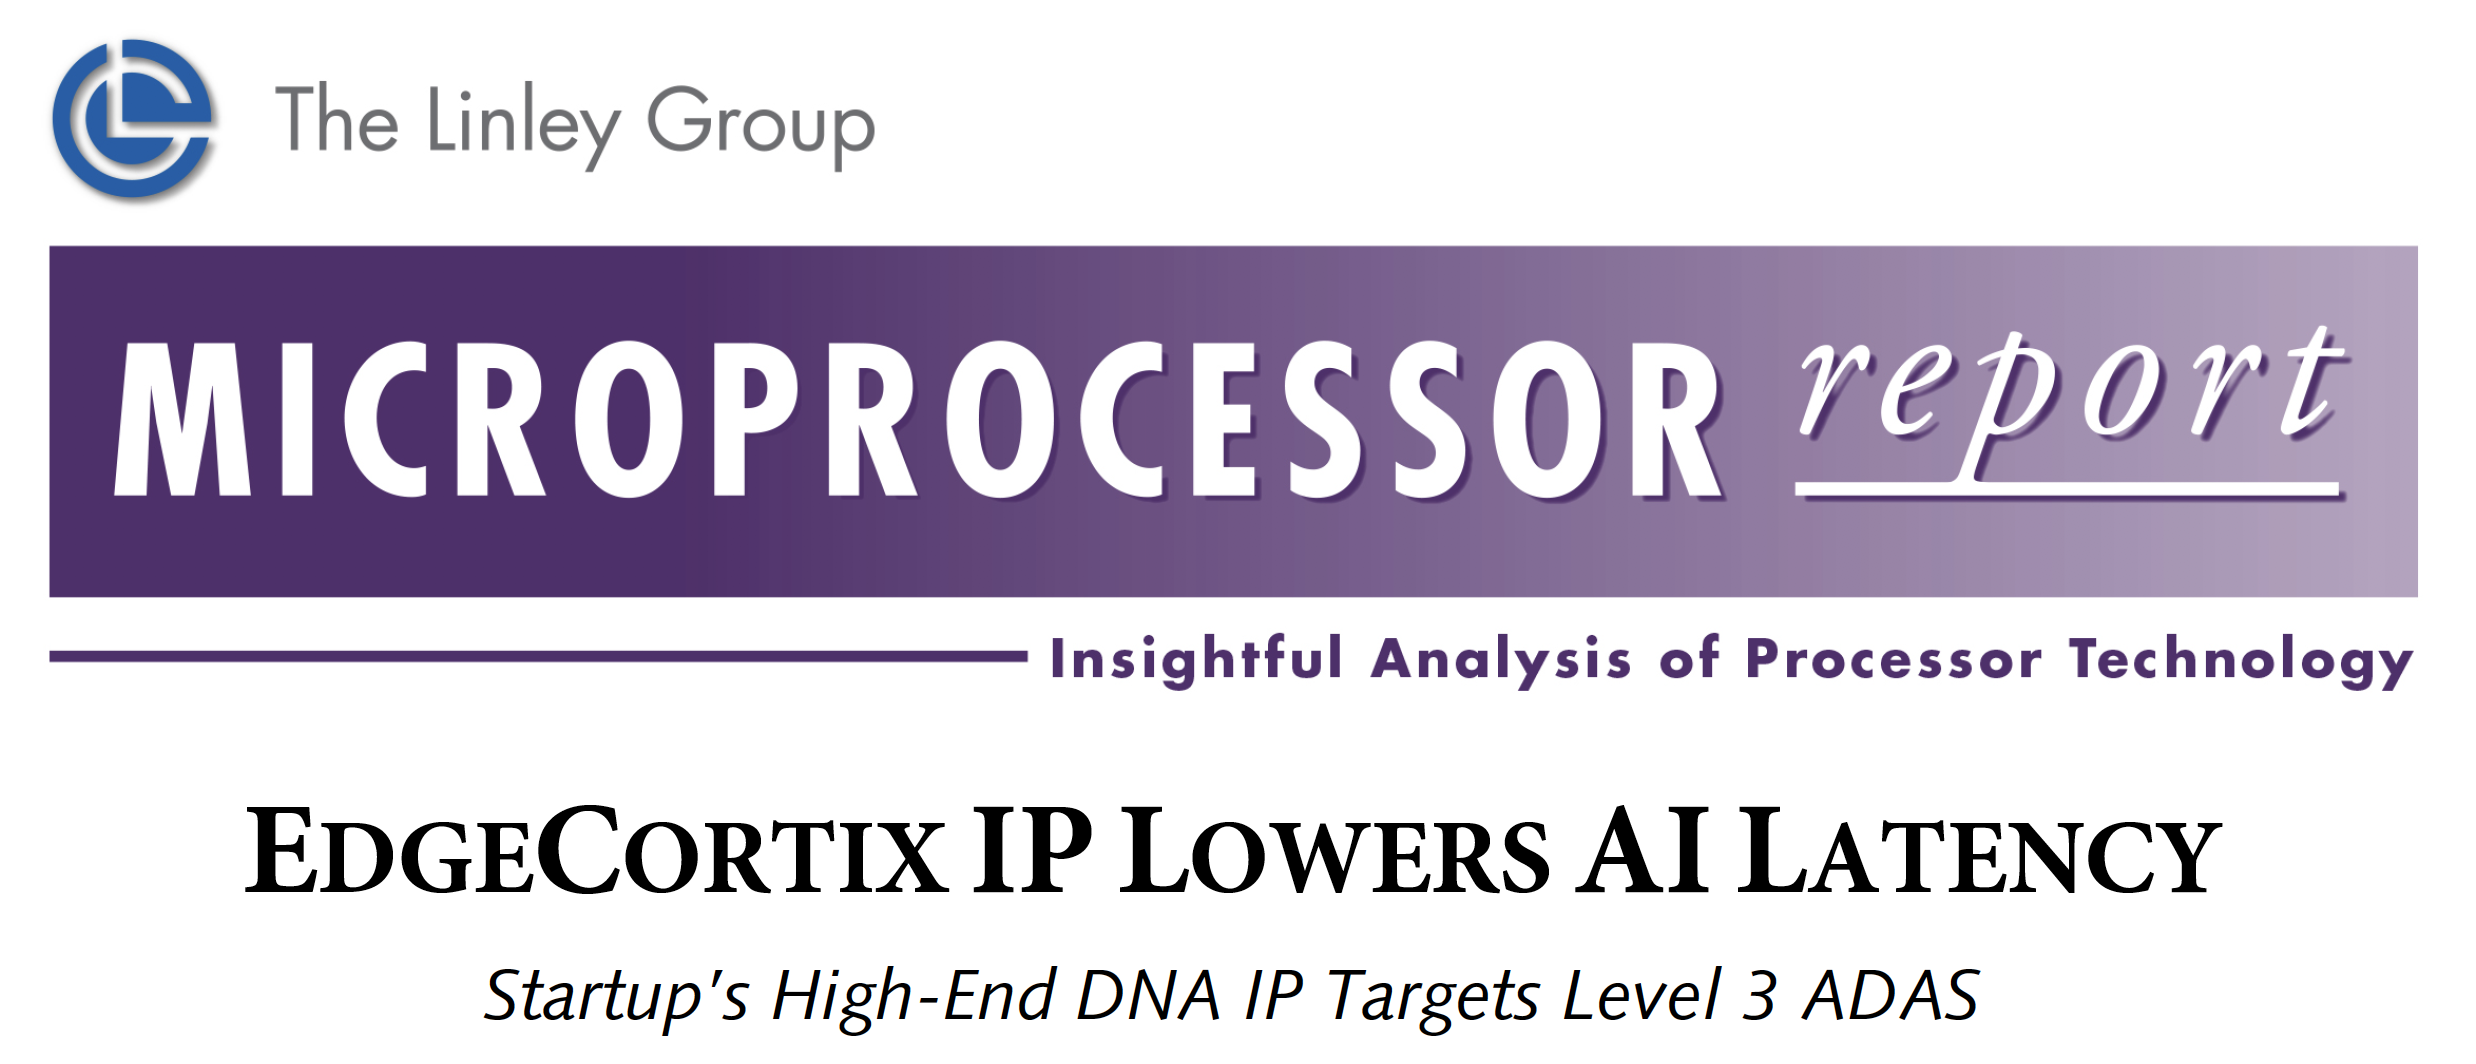 The Linley Group Microprocessor Report on EdgeCortix